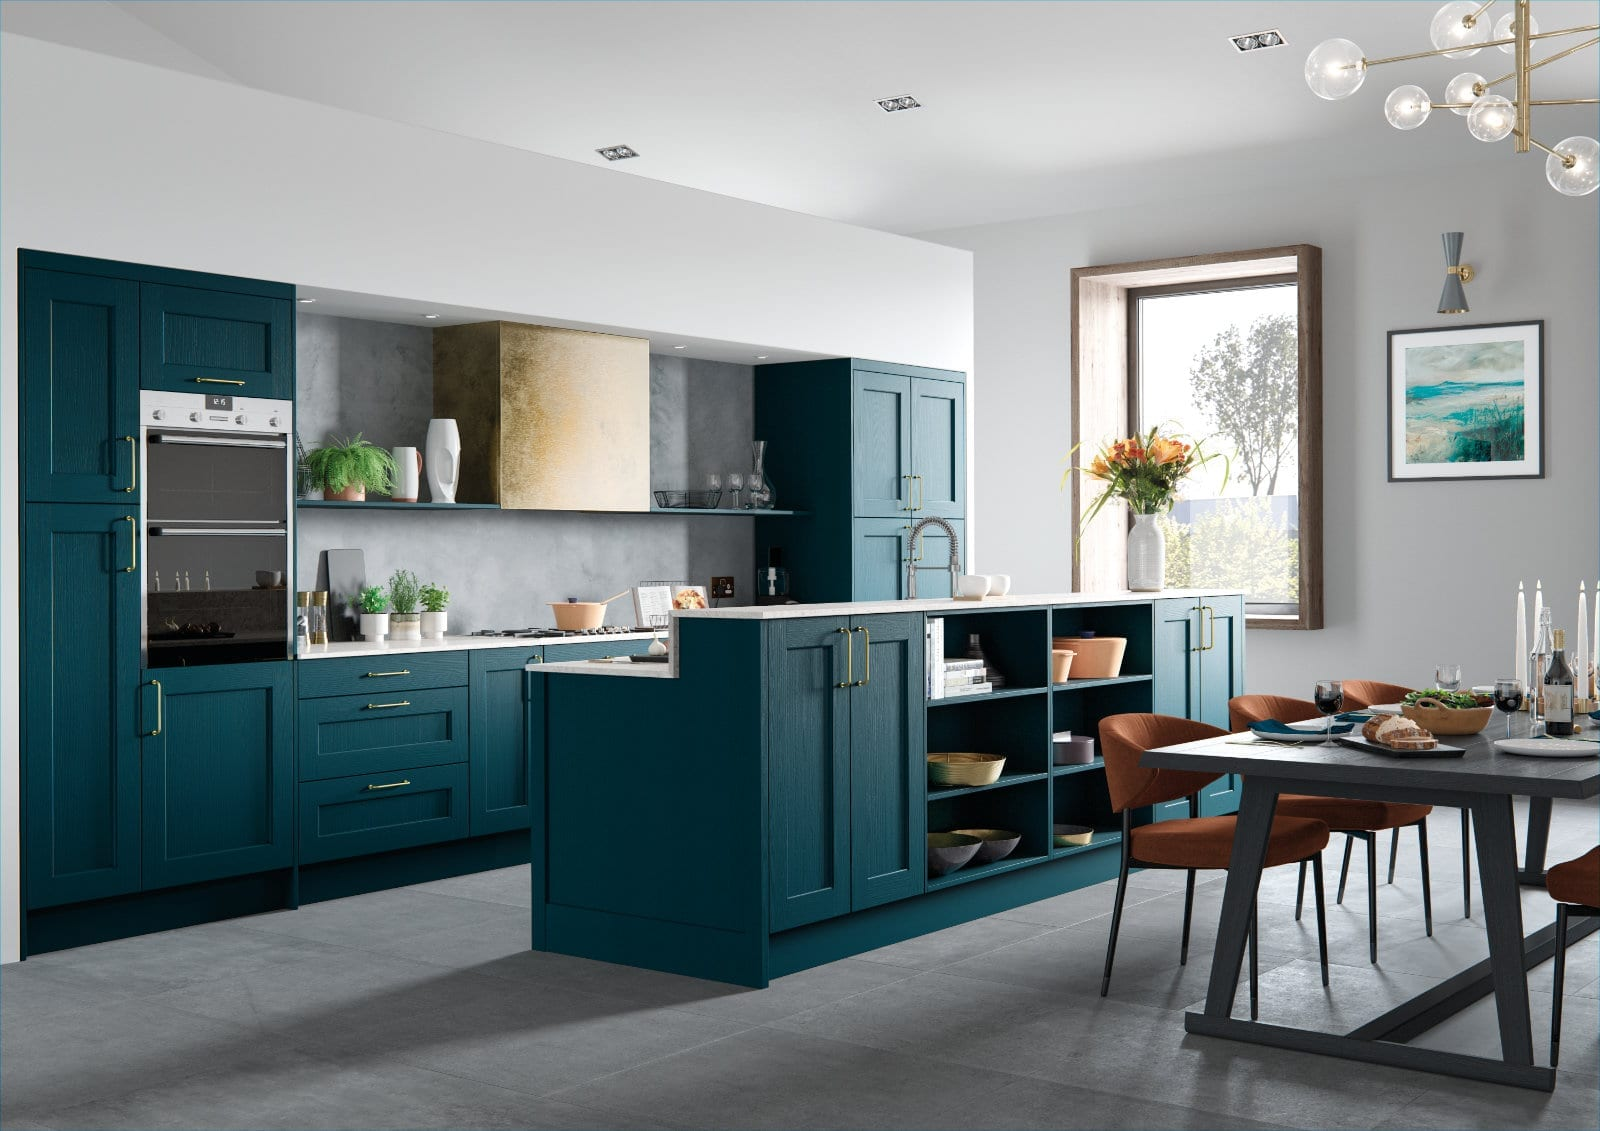 Alku Teal Shaker Open Plan Kitchen With Island 2 | Unique Bedrooms Direct | Dunstable